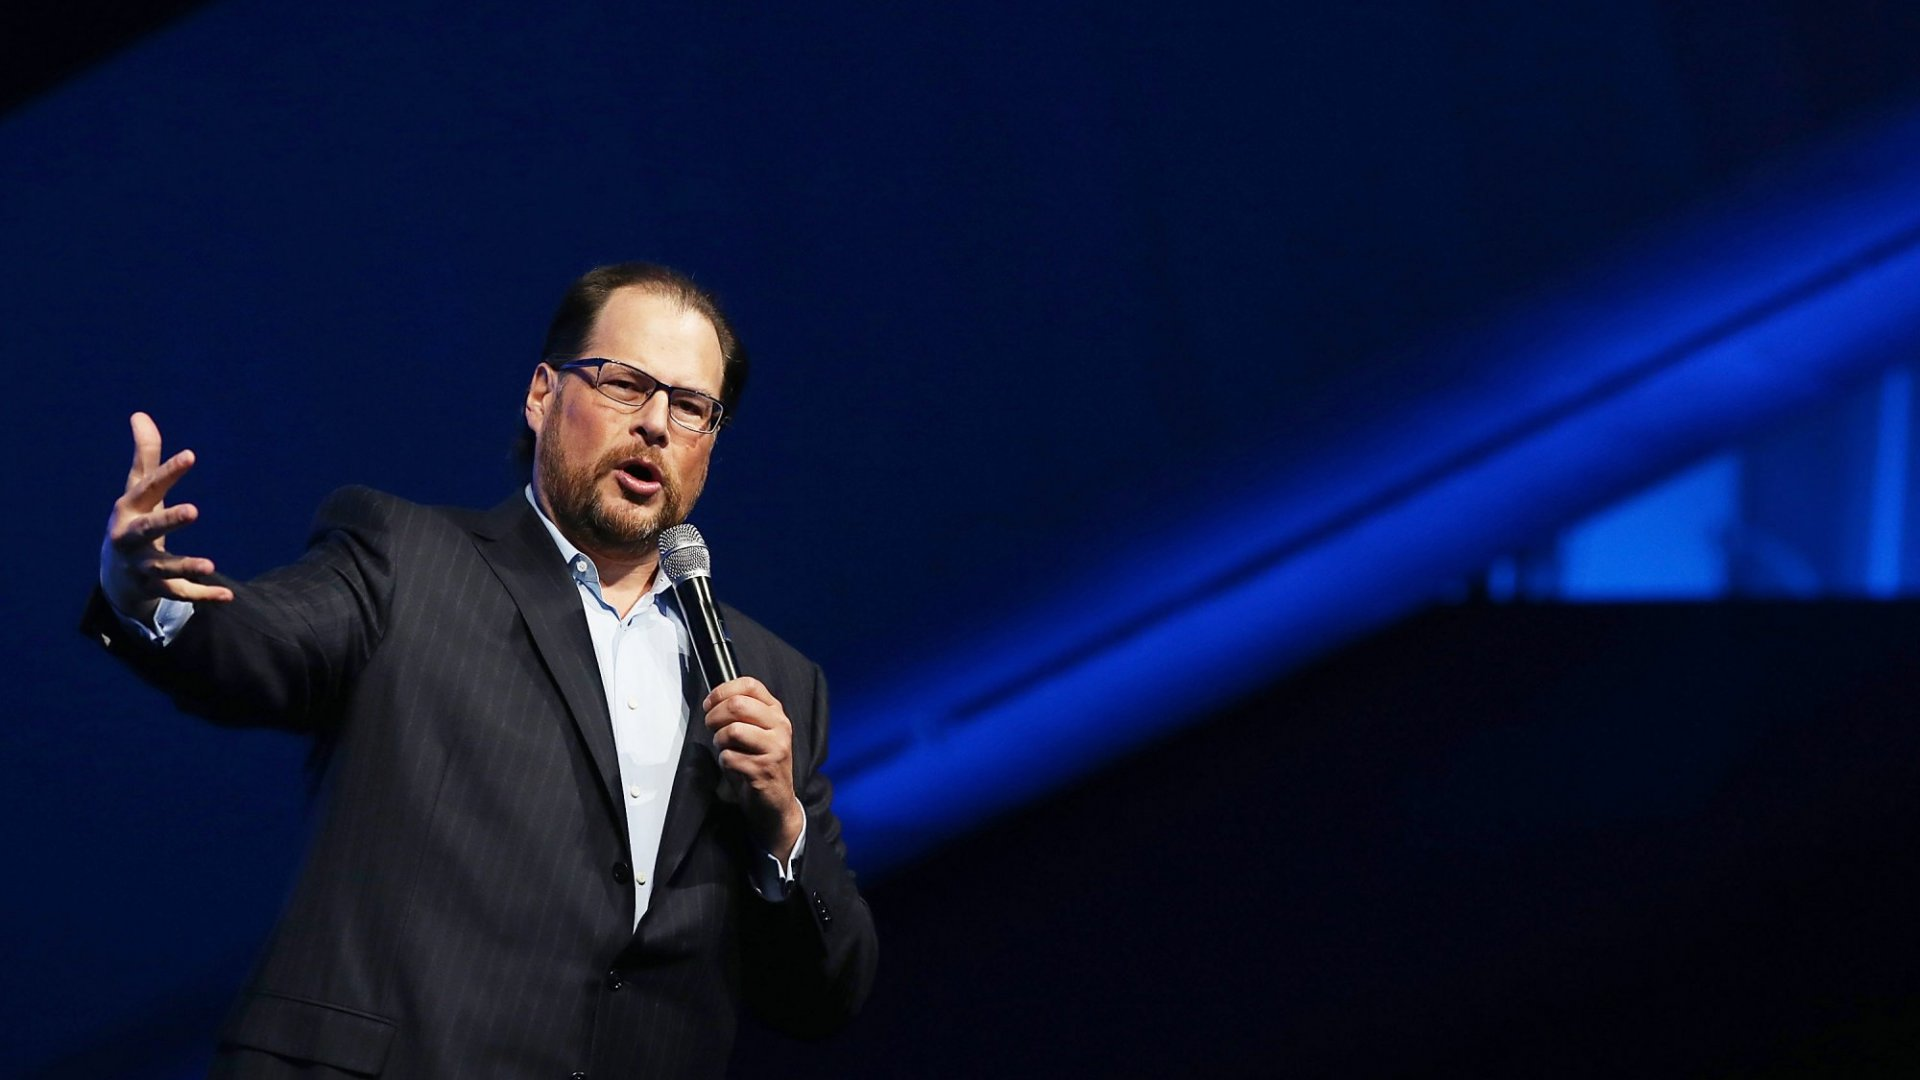 Salesforce Says It Won't Build a Muslim Registry, Joining Apple, Facebook, Google, Others